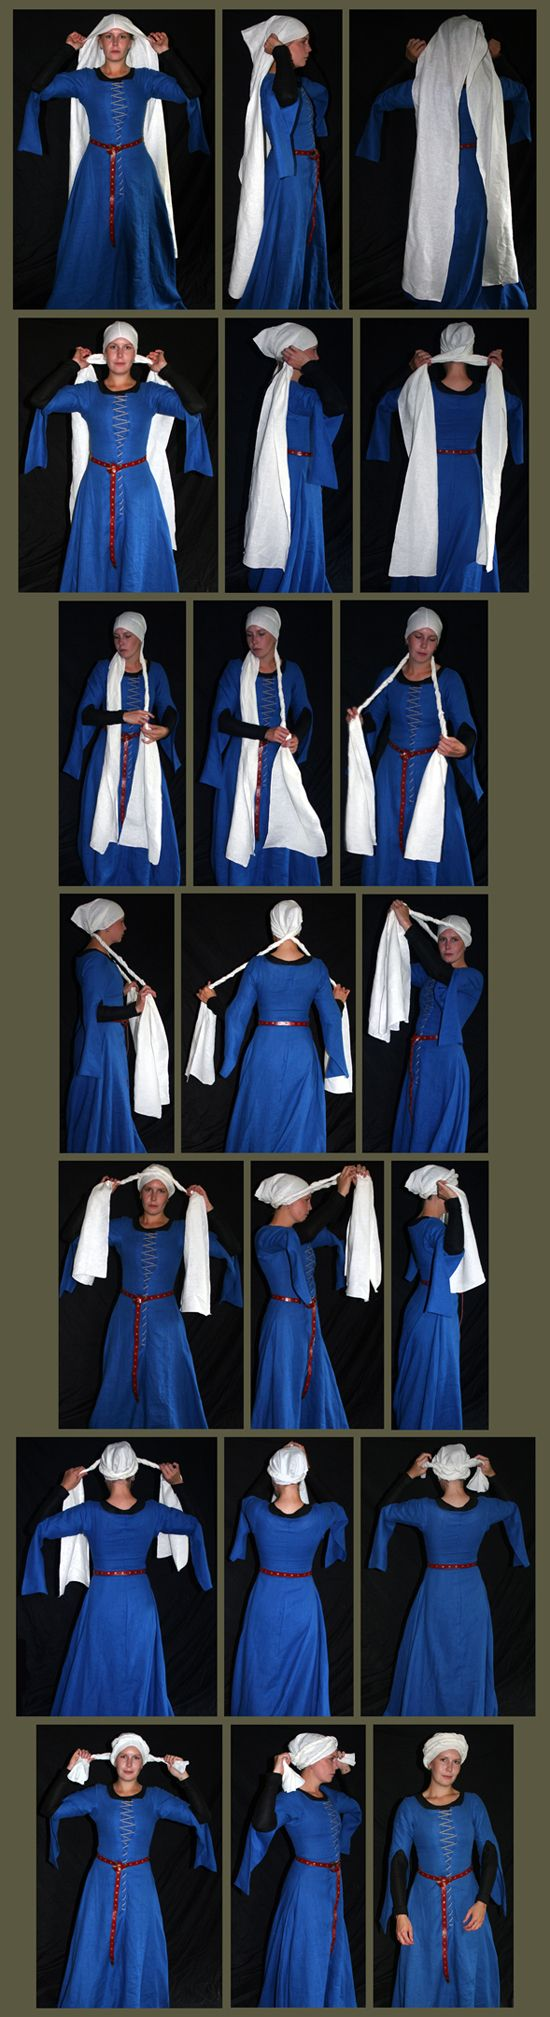 Medieval Clothing and Footwear- 15th Century Women's Turban. Cover your head at events! I always pack a couple yards of plain muslin for events, really easy and really great look.